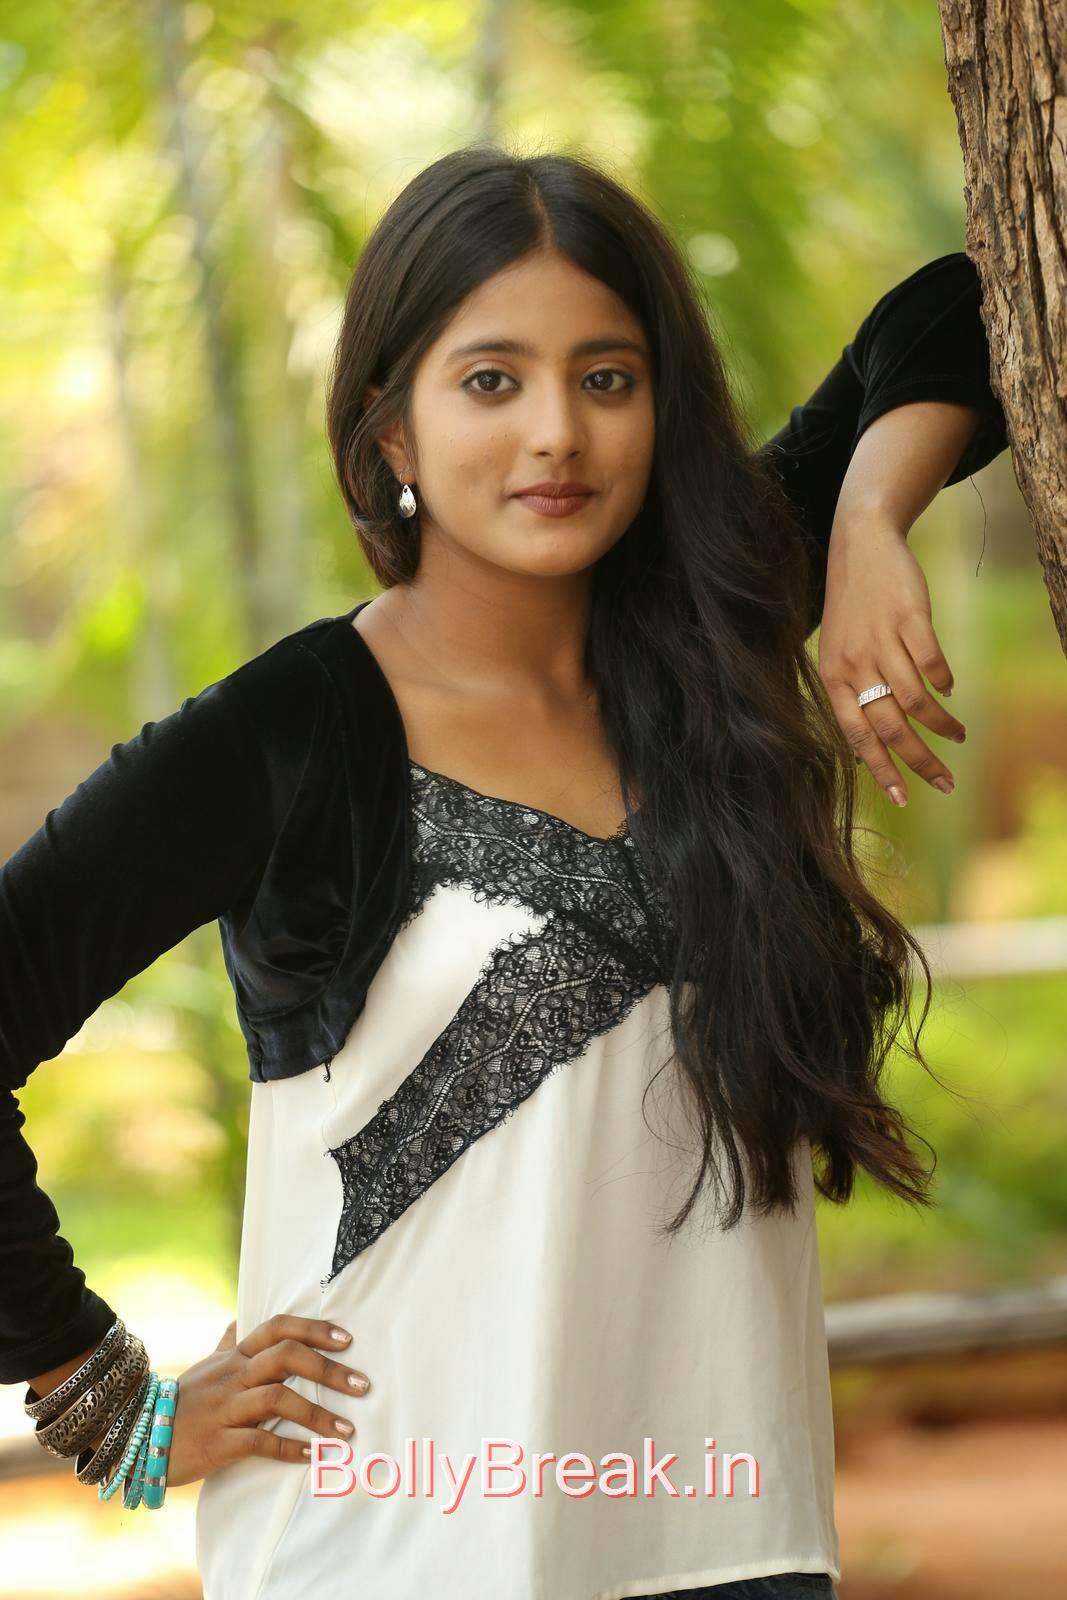 Ulka Gupta Stills, Cute, Sweet, Innocent Indian Actress Ulka Gupta hot HD Photo Gallery Pics